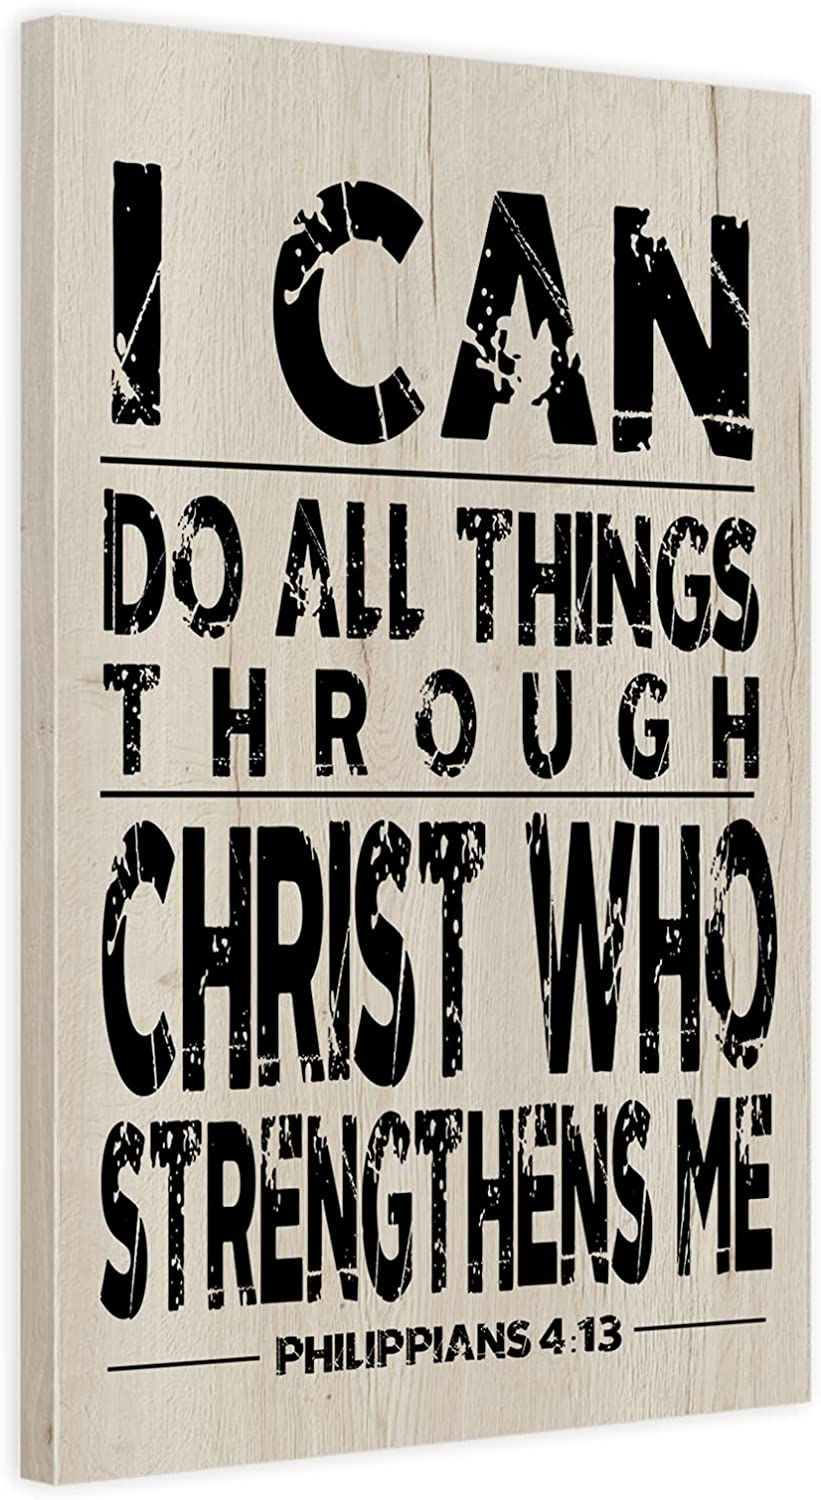 Christian Family Decor Wood Plaque Inspiring Quote 11x16 inch Bible Verse Sign Wall Hanging Decoration Soul Wall Art Serenity Prayer Signage Religious Faith Decorations for Home Wooden Picture